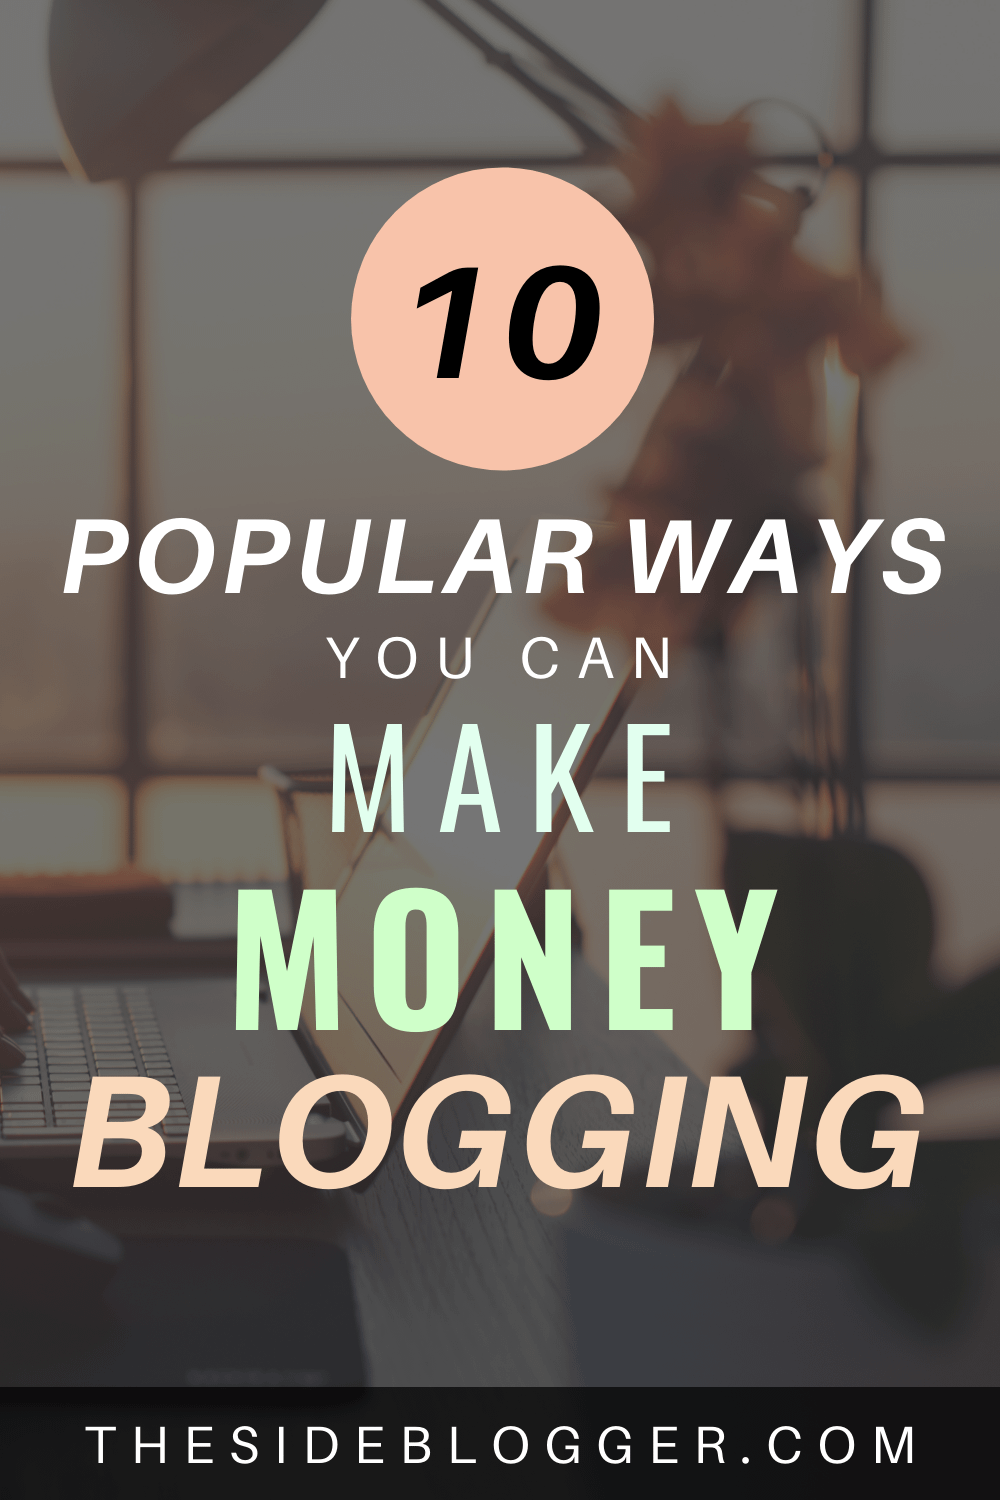 10 popular ways you can make money blogging